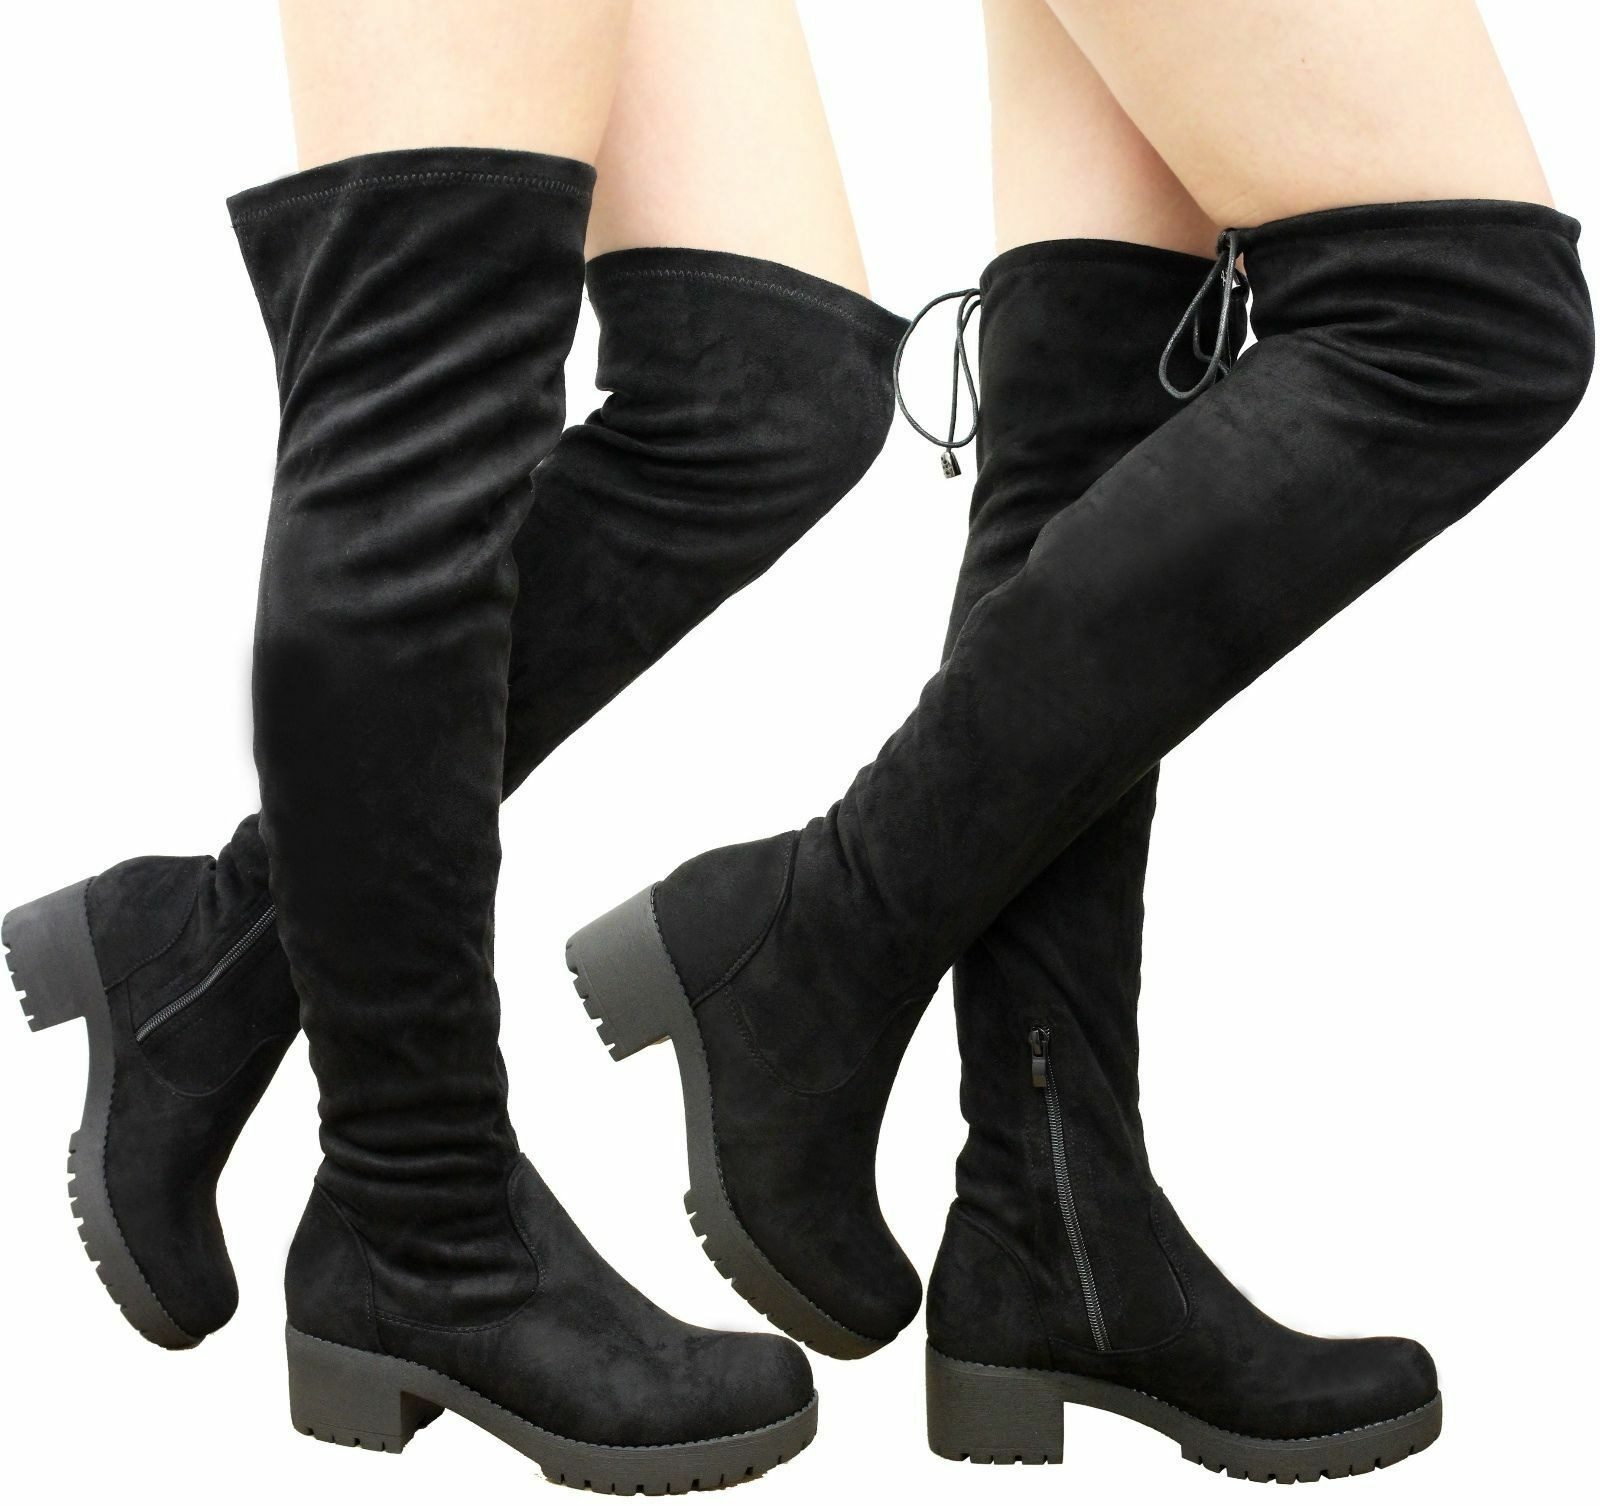 New Ladies Womens Over The Knee Boots Thigh High Lace Up Chunky Heel Shoes Size